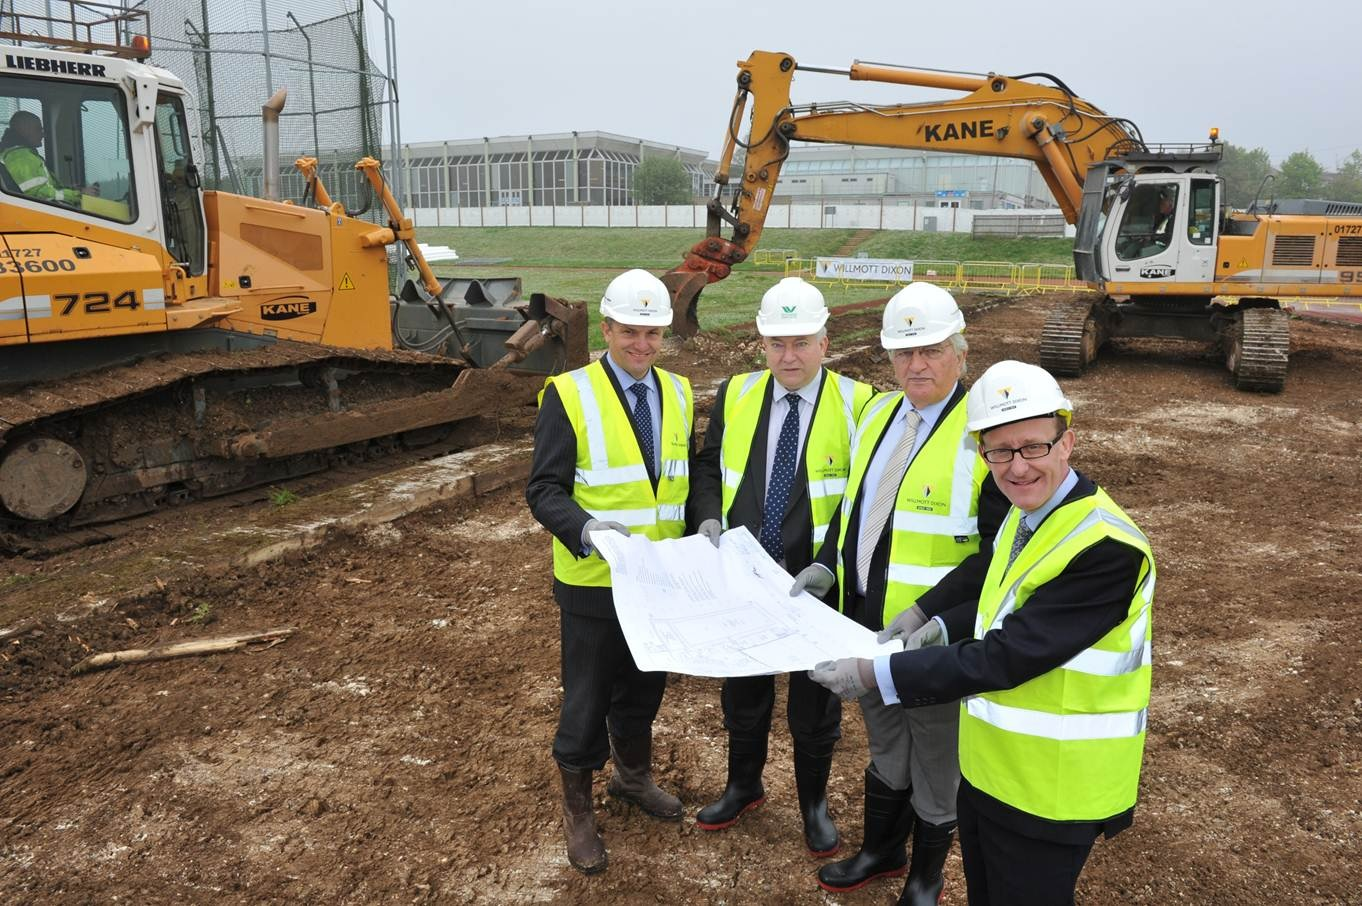 Construction begins on new Wycombe Sports Centre